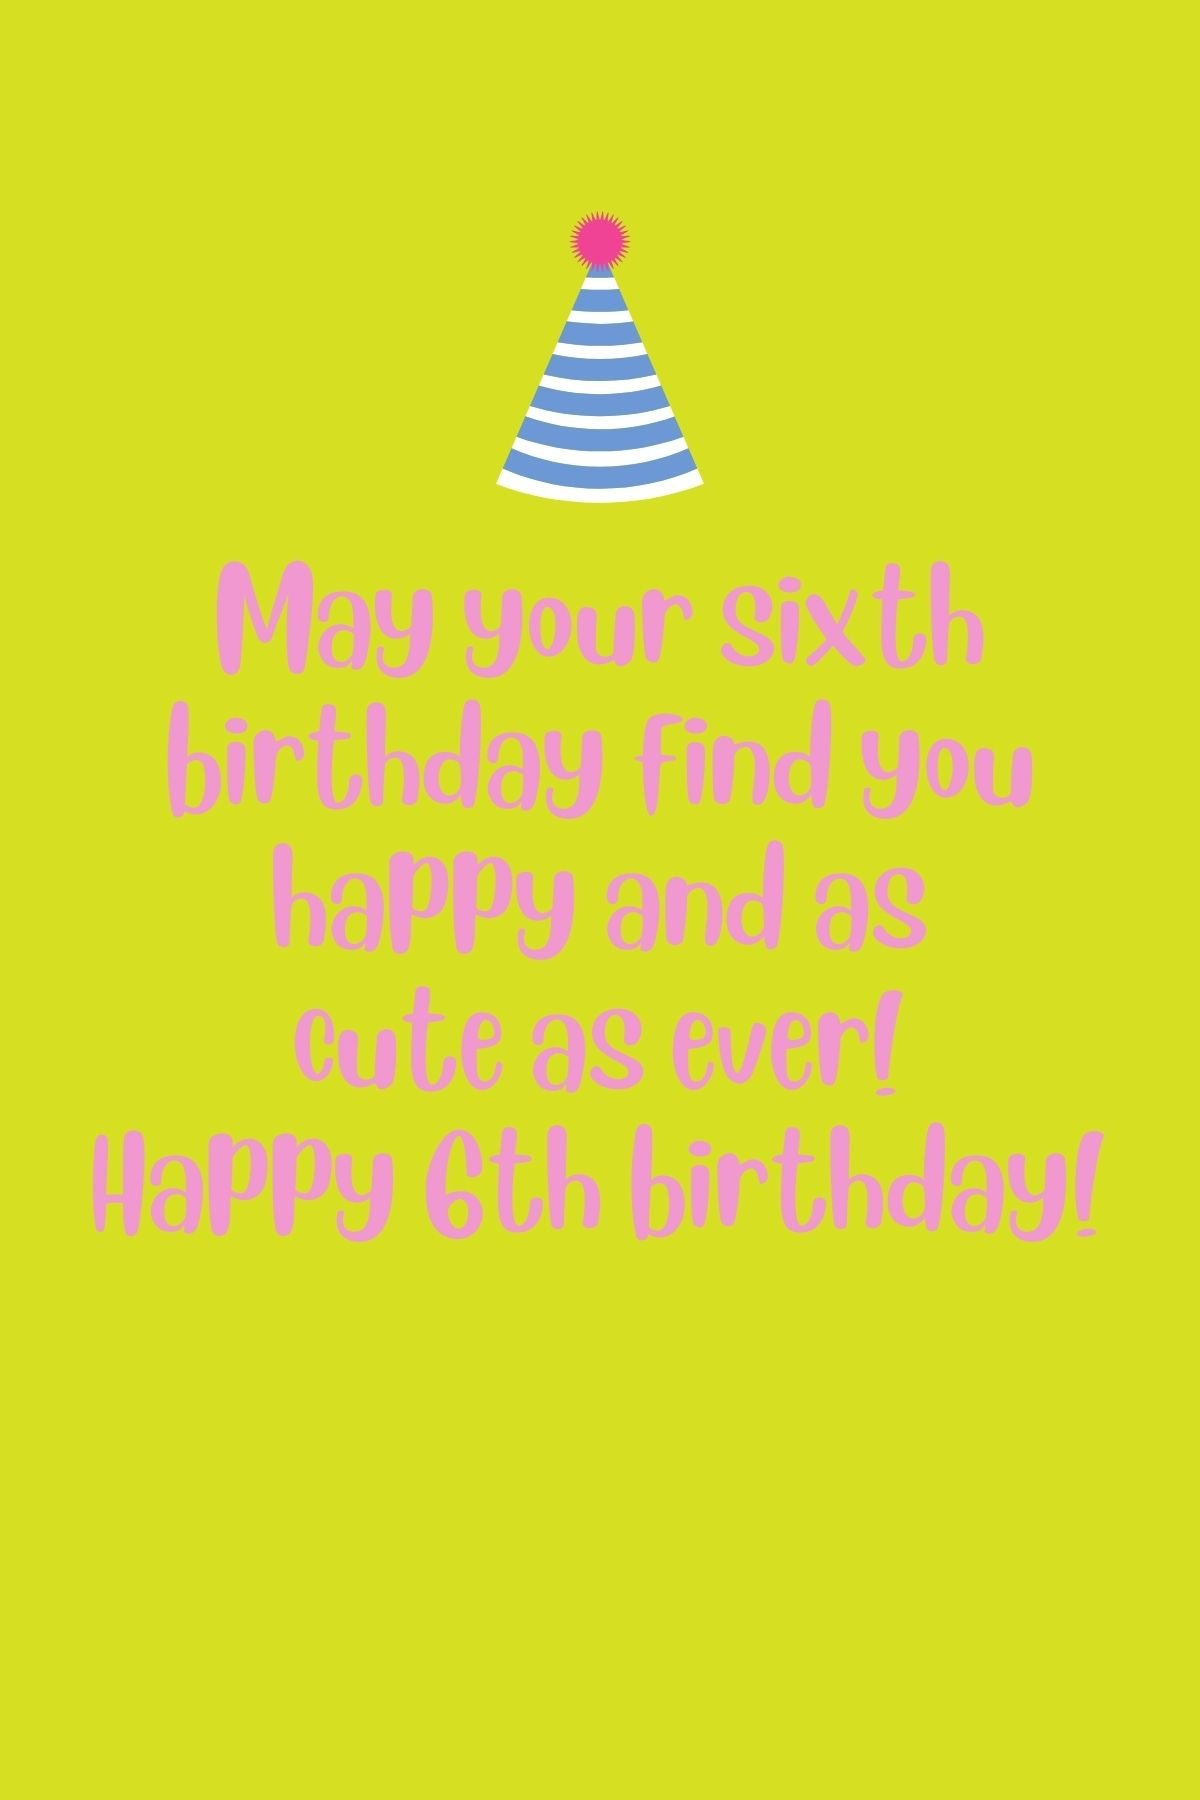 6th Birthday Quotes for Girls